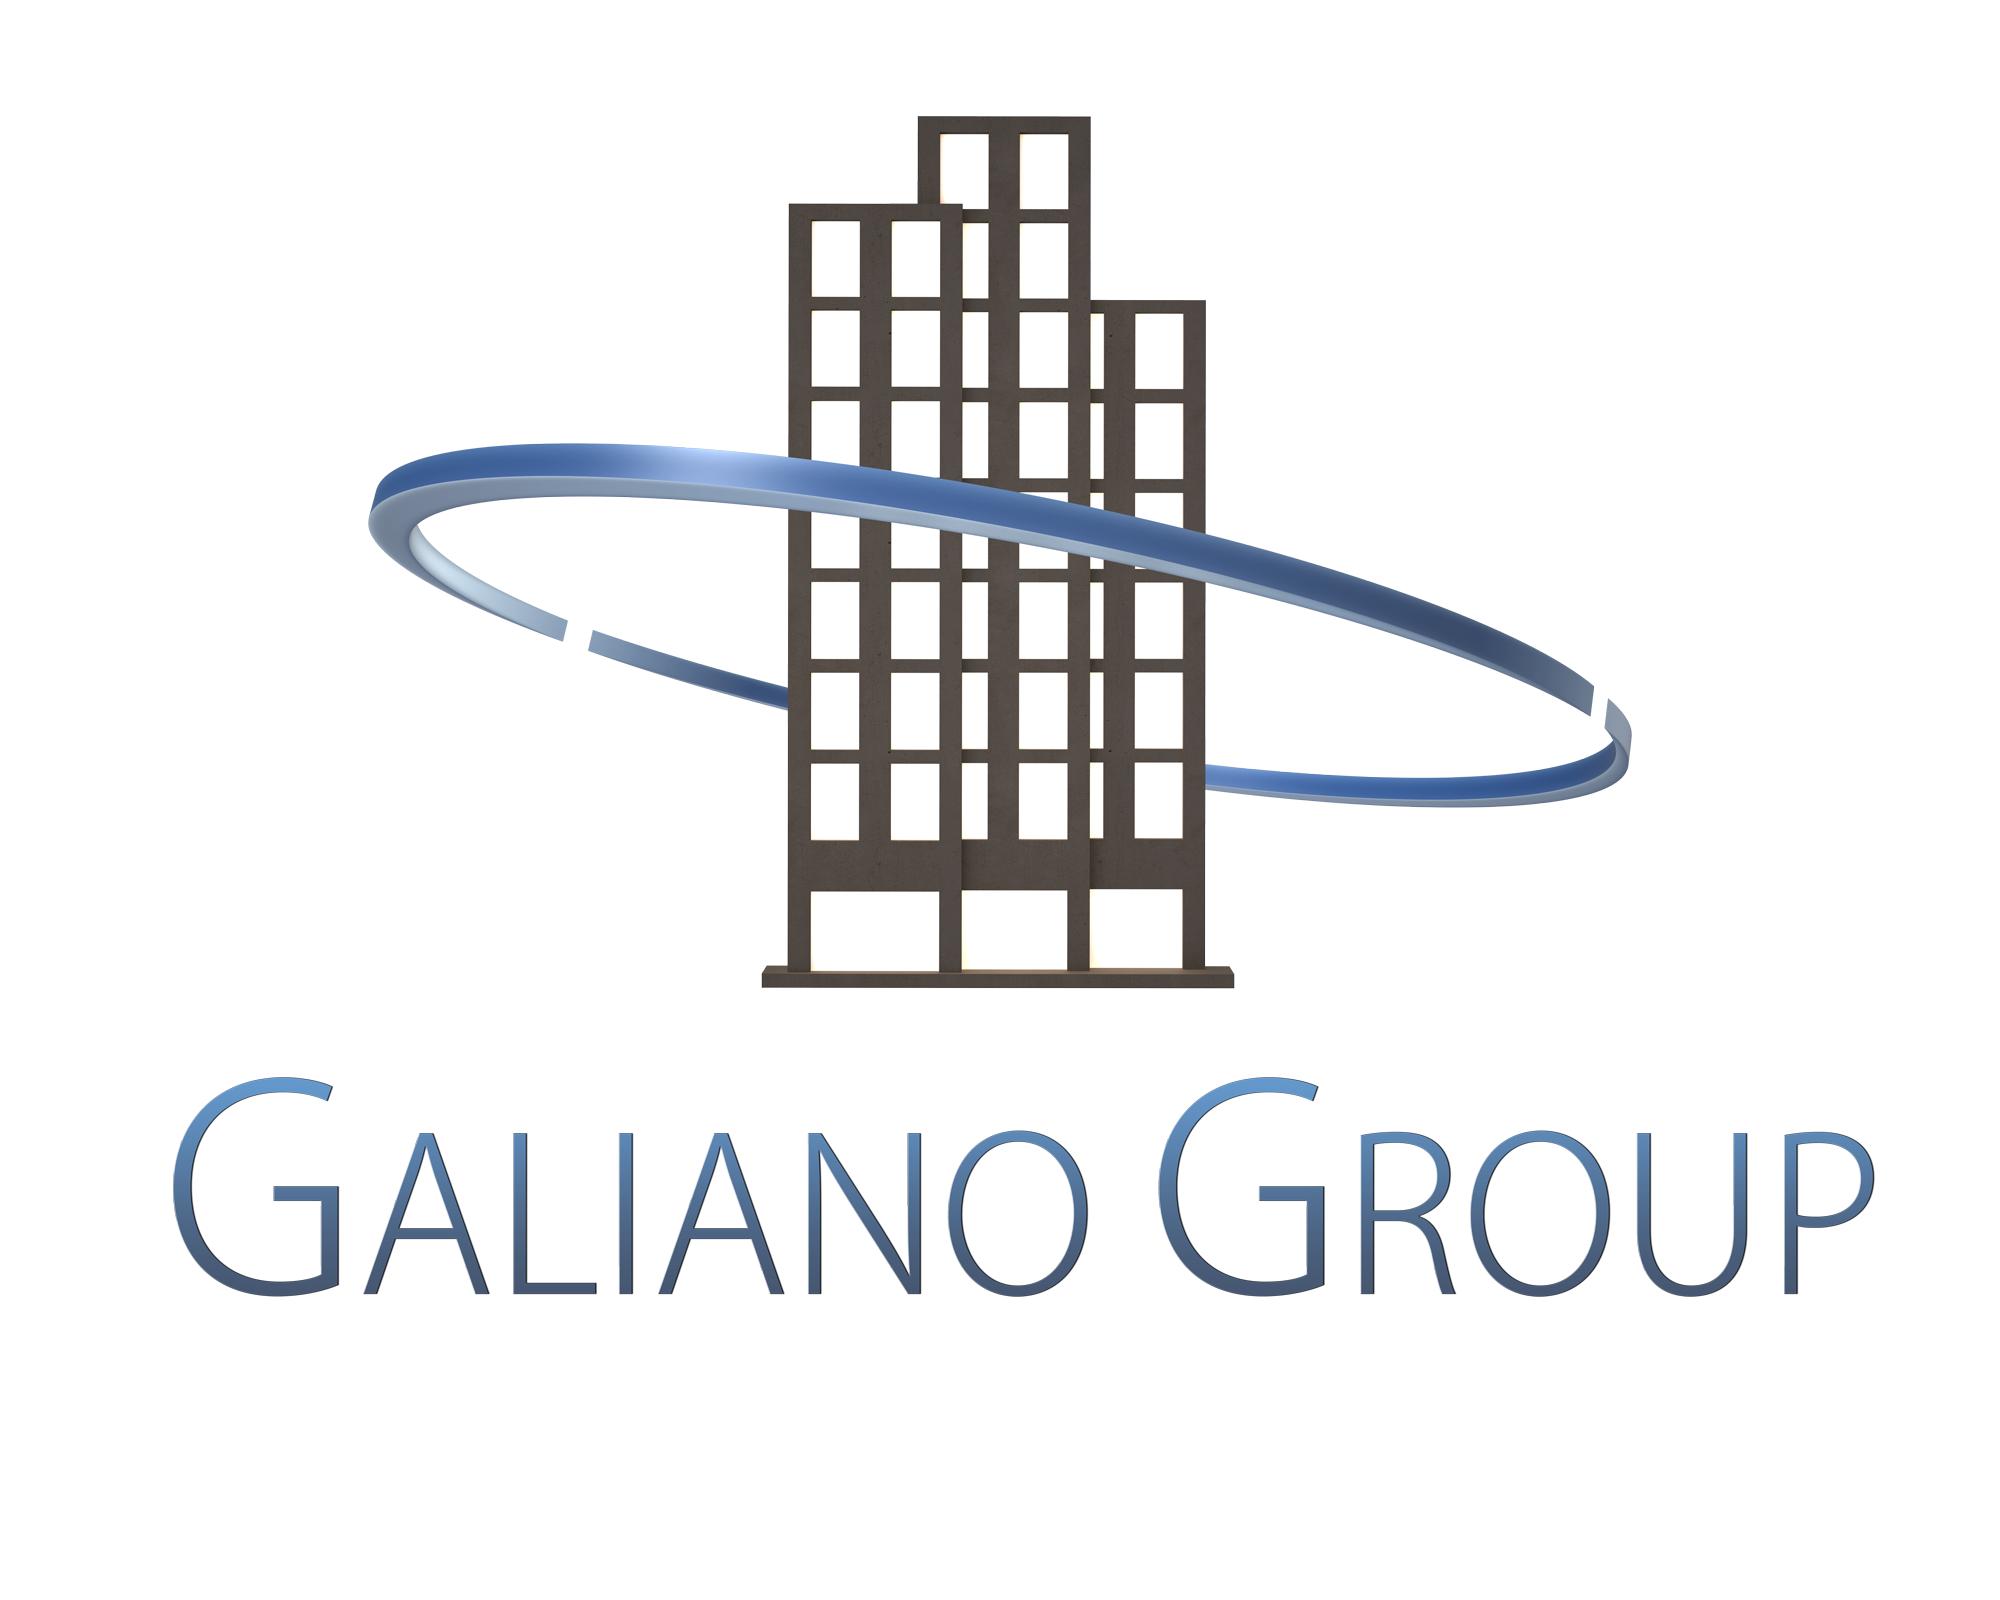 Galiano Group s.r.l.